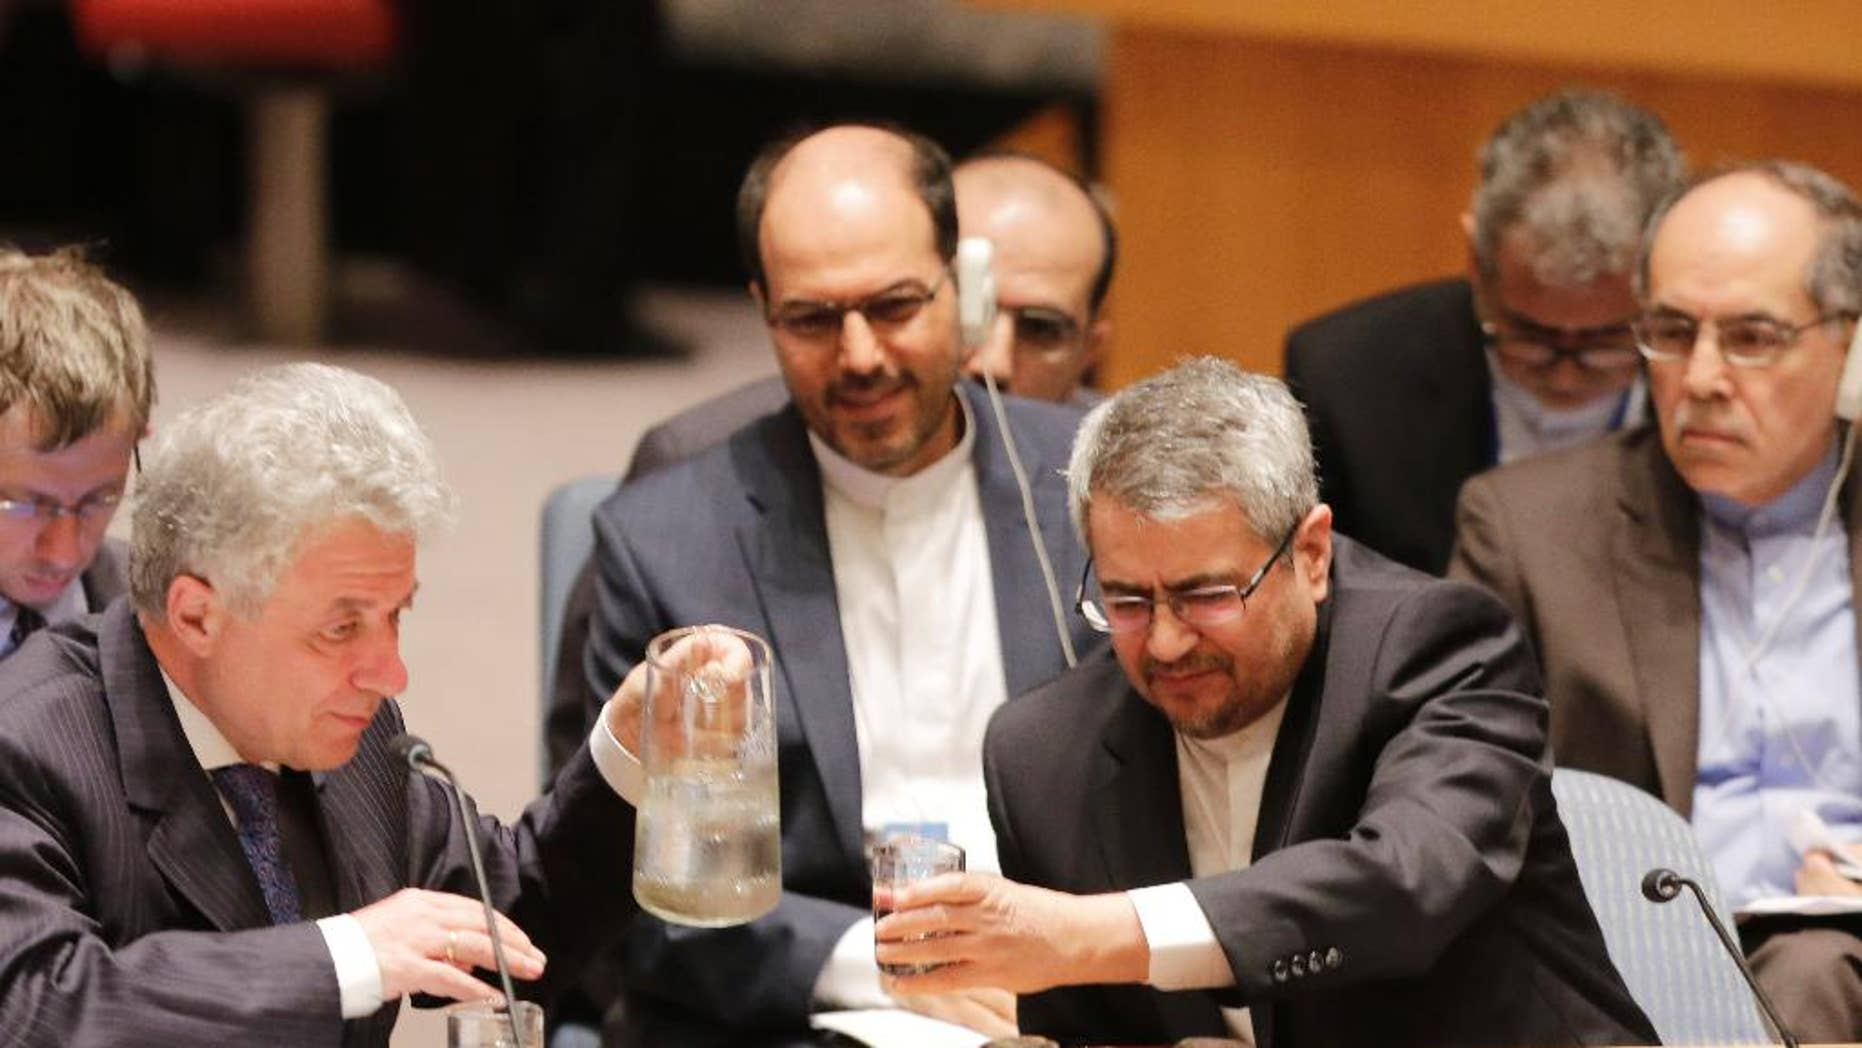 Thomas Mayr-Harting, left, head of the delegation of the European Union to the United Nations, pours a glass of water for Iran's U.N. Ambassador, Gholamali Khoshroo, at United Nations headquarters, Monday, July 20, 2015. The U.N. Security Council on Monday unanimously endorsed the landmark nuclear deal between Iran and six world powers and authorized a series of measures leading to the end of U.N. sanctions that have hurt Iran's economy. (AP Photo/Mark Lennihan)